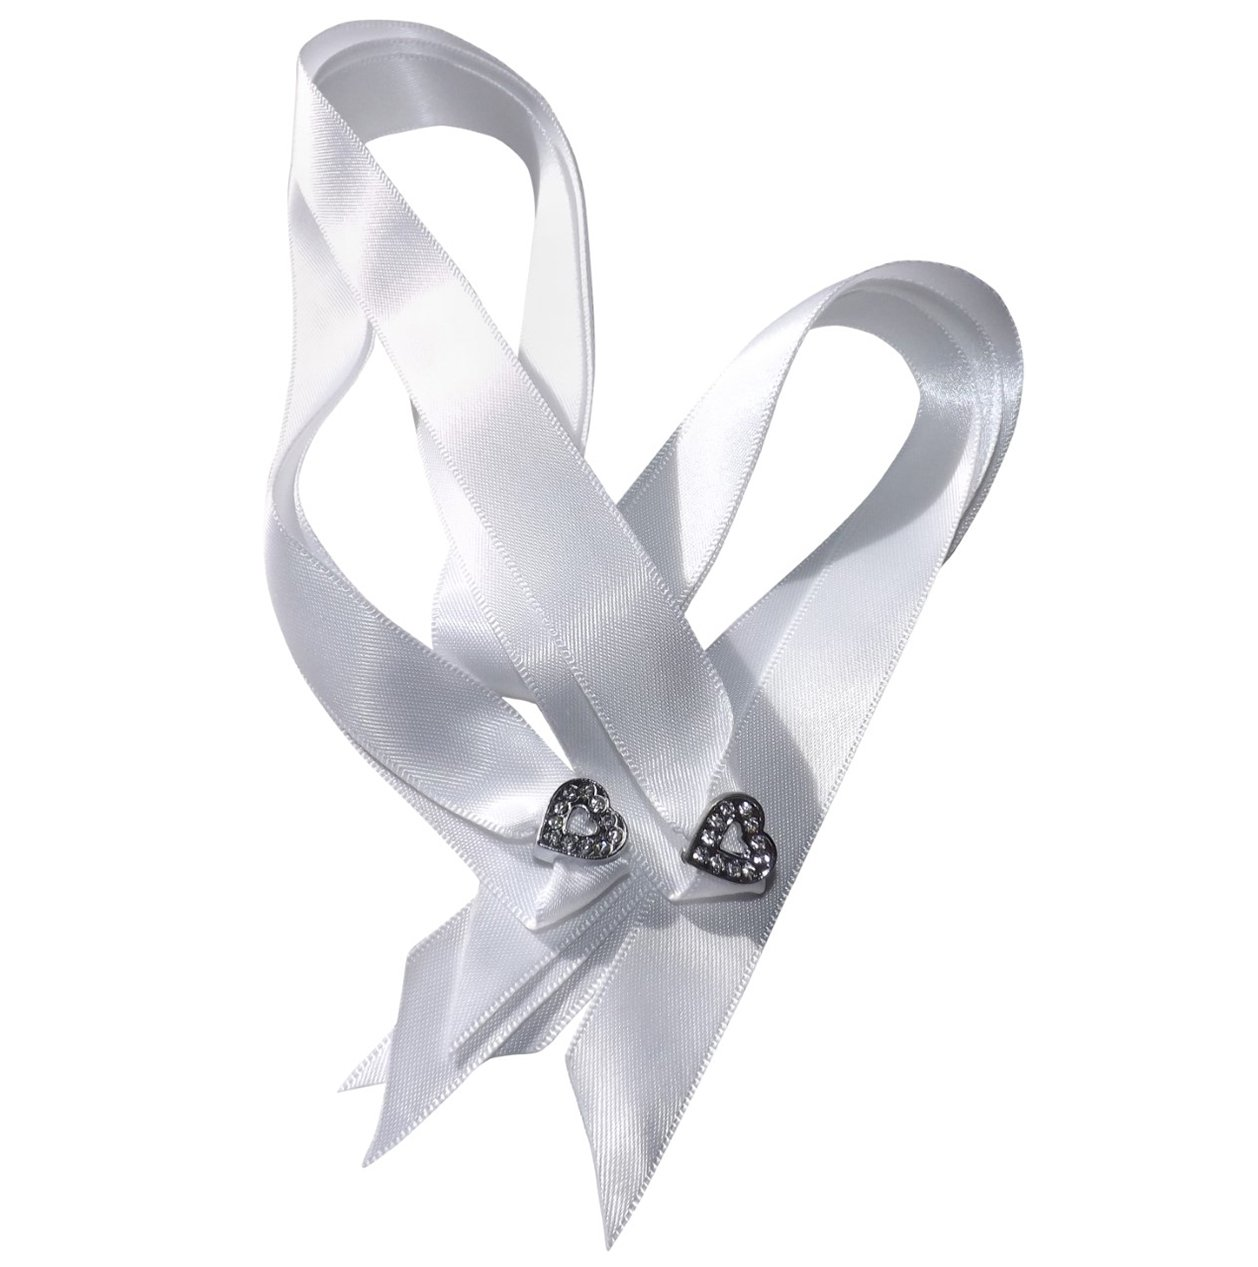 A Pair of Women's Stunning Crystal Heart Shoe Charms with a FREE Pair of Our White Satin Ribbon Laces